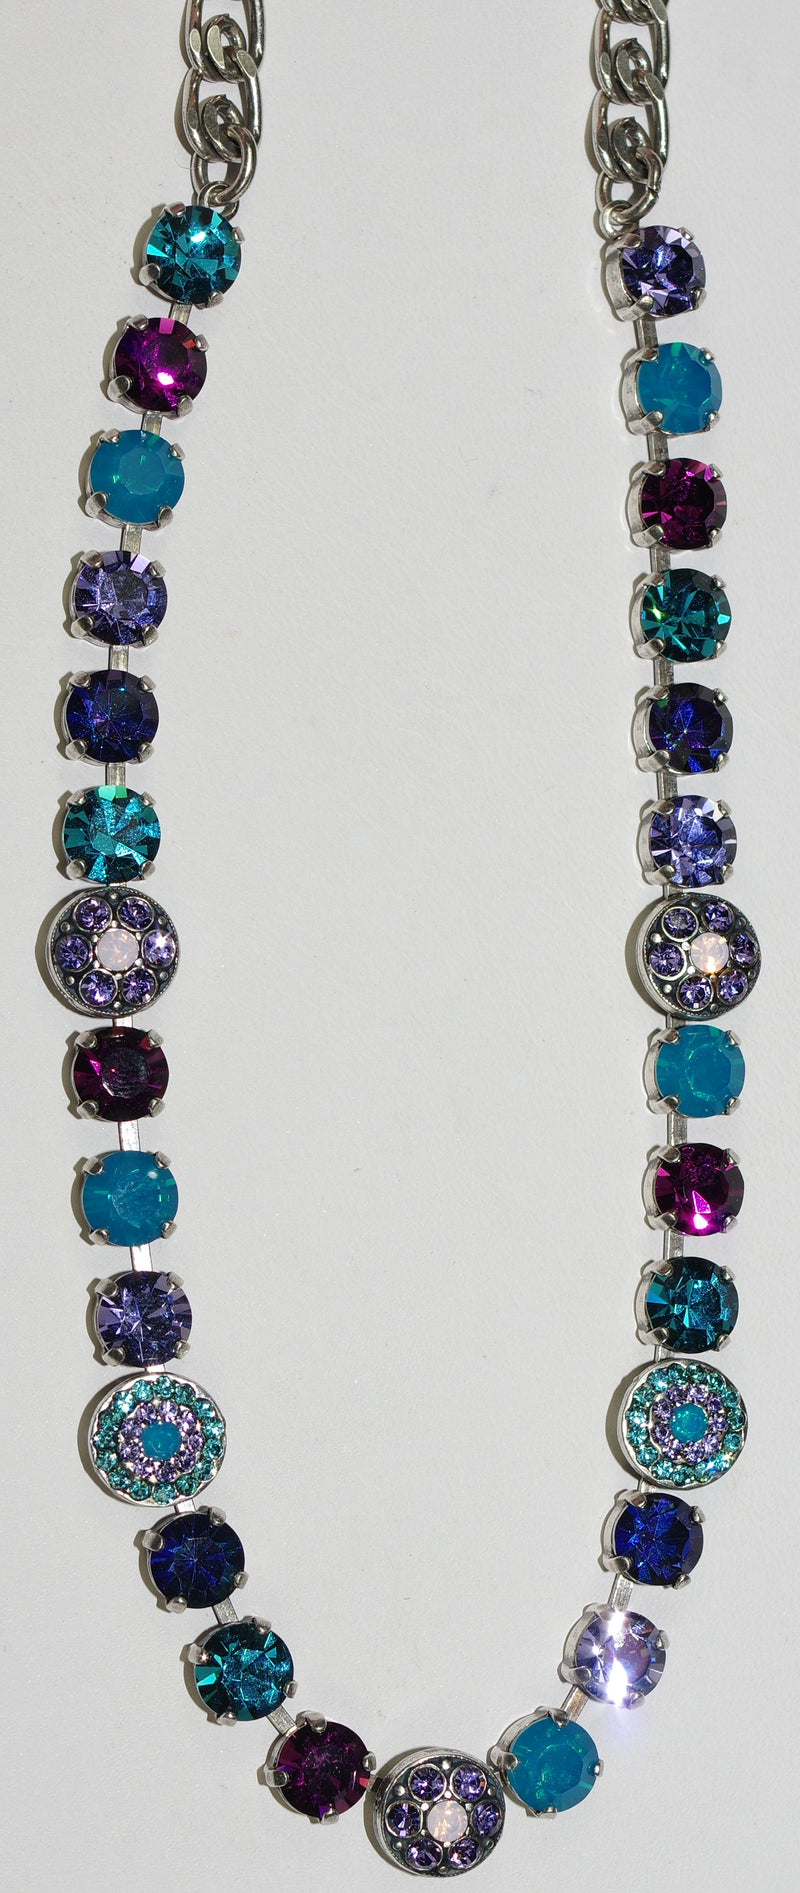 "MARIANA NECKLACE PEACOCK: blue, purple, pink 1/2"" stones in silver setting, 18"" adjustable chain"